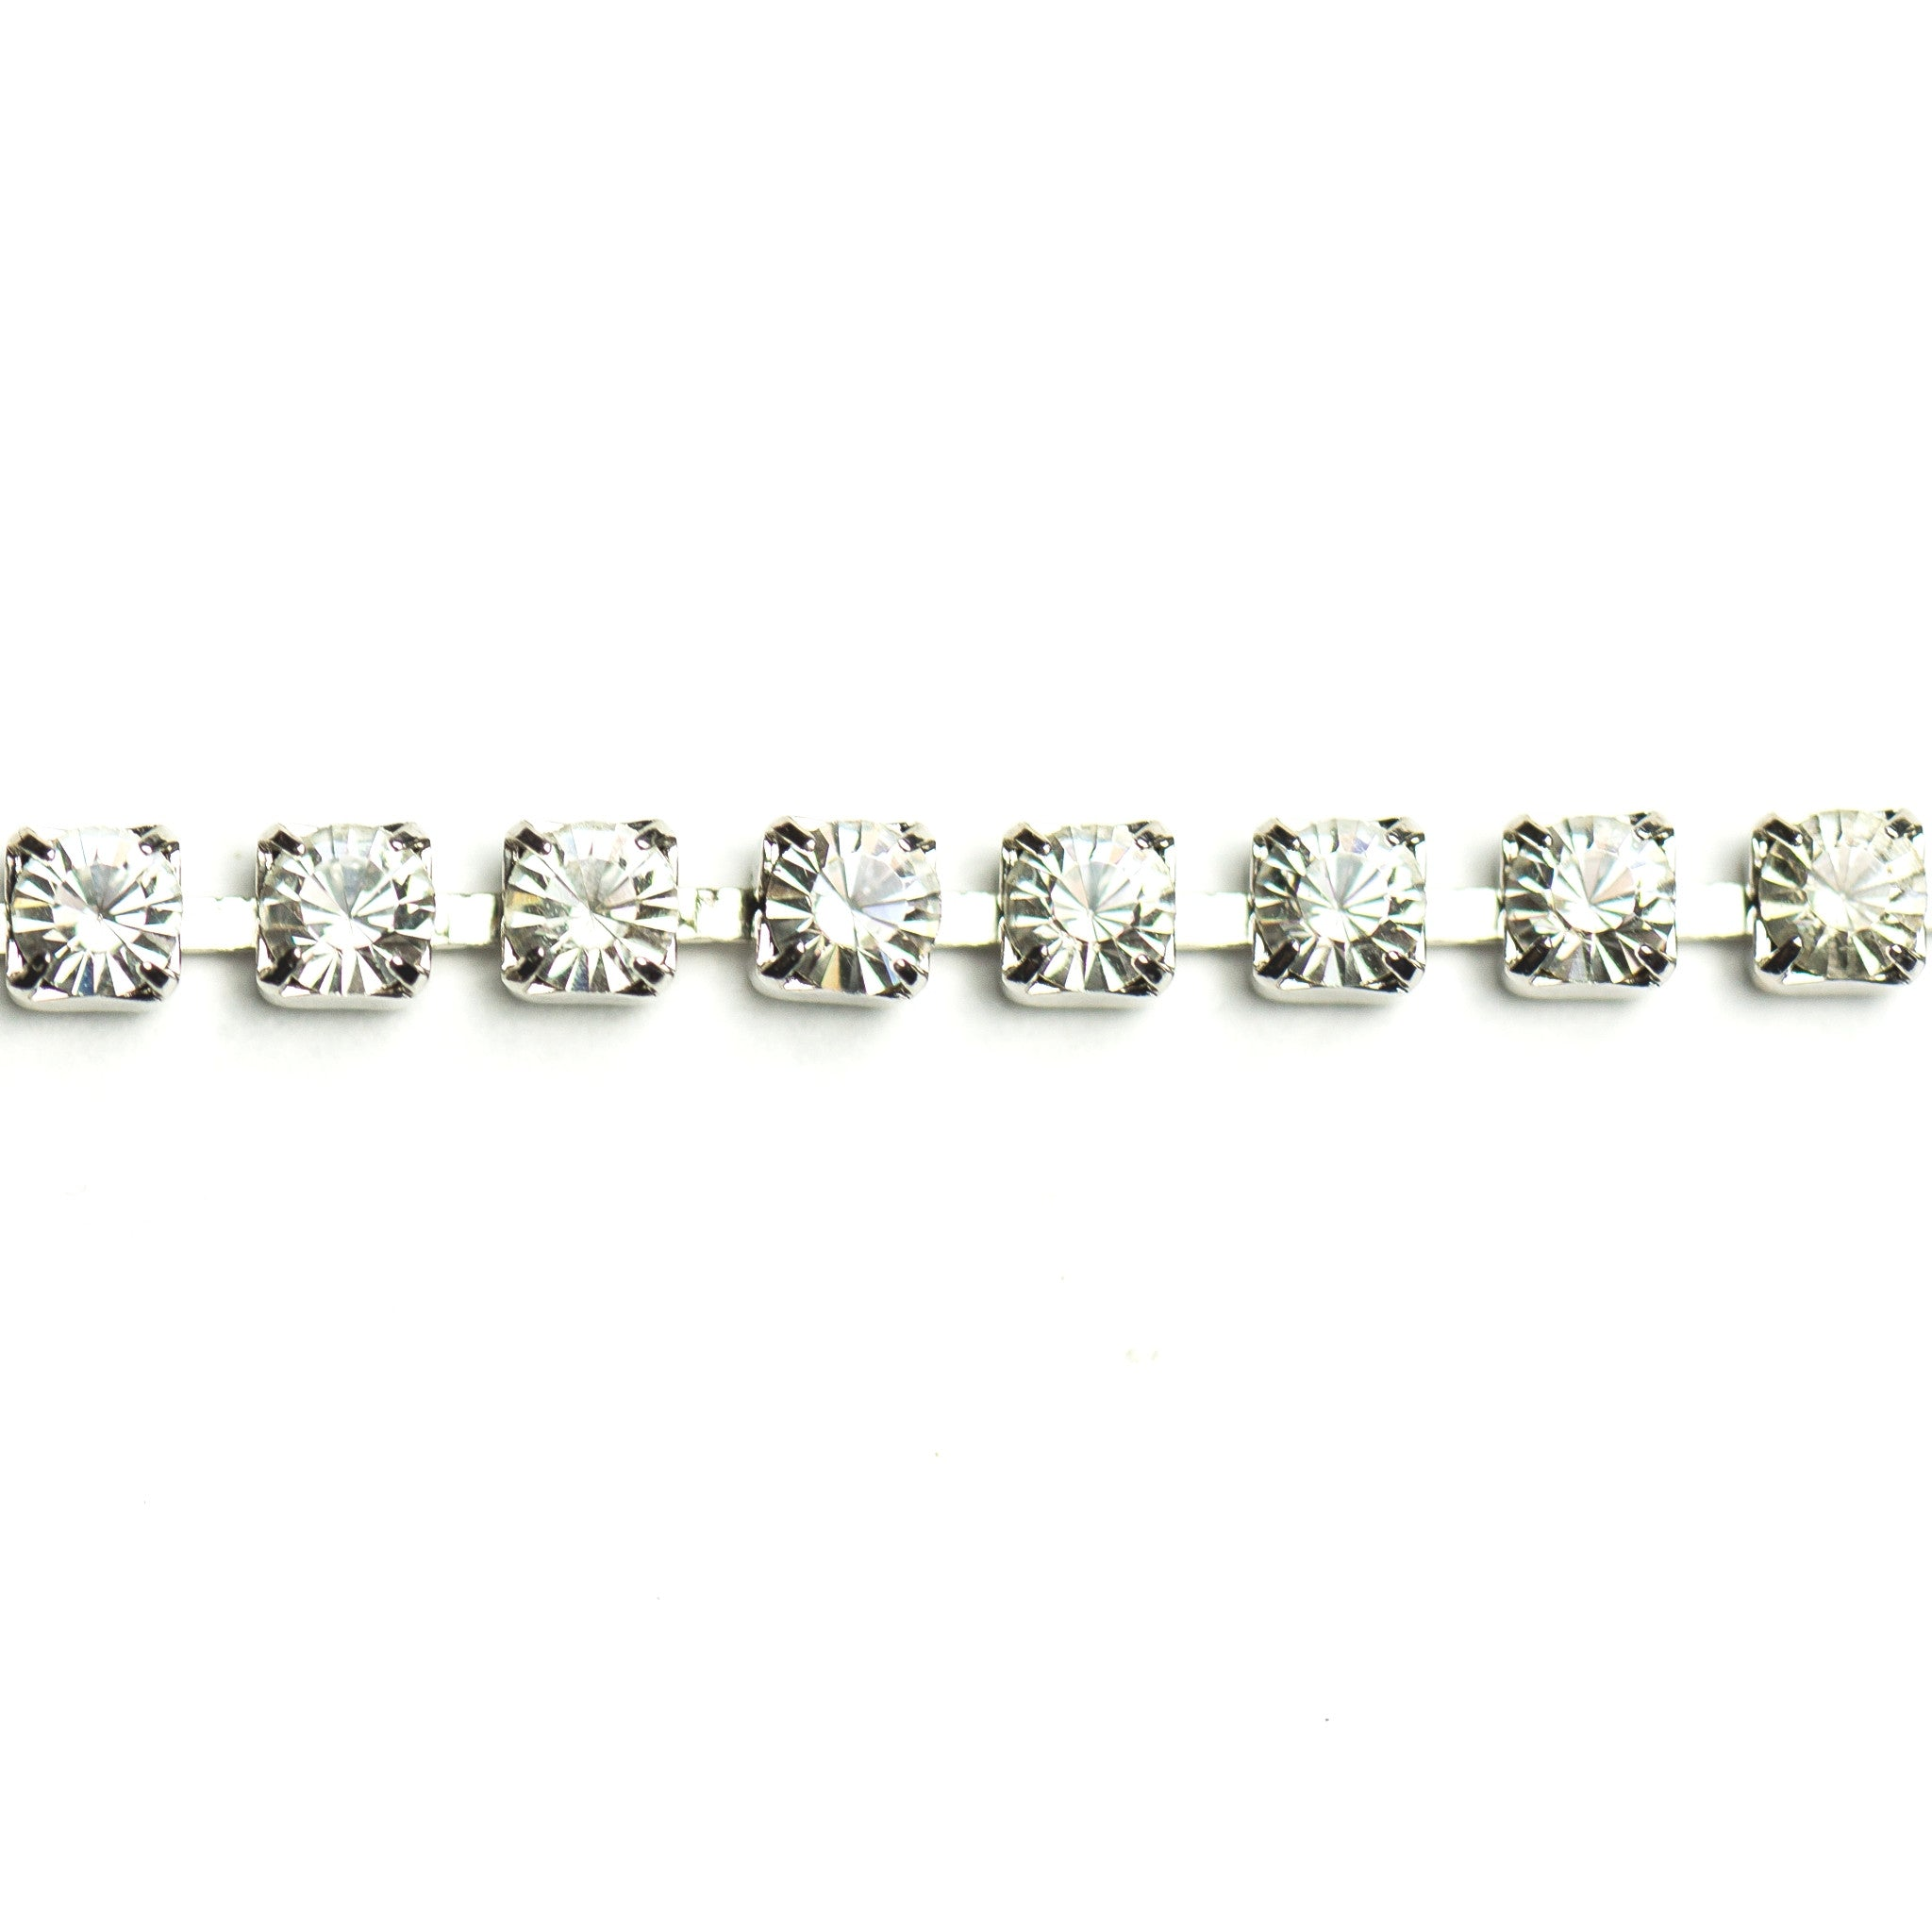 Rhinestone Chain Crystal/Silver (1 foot)